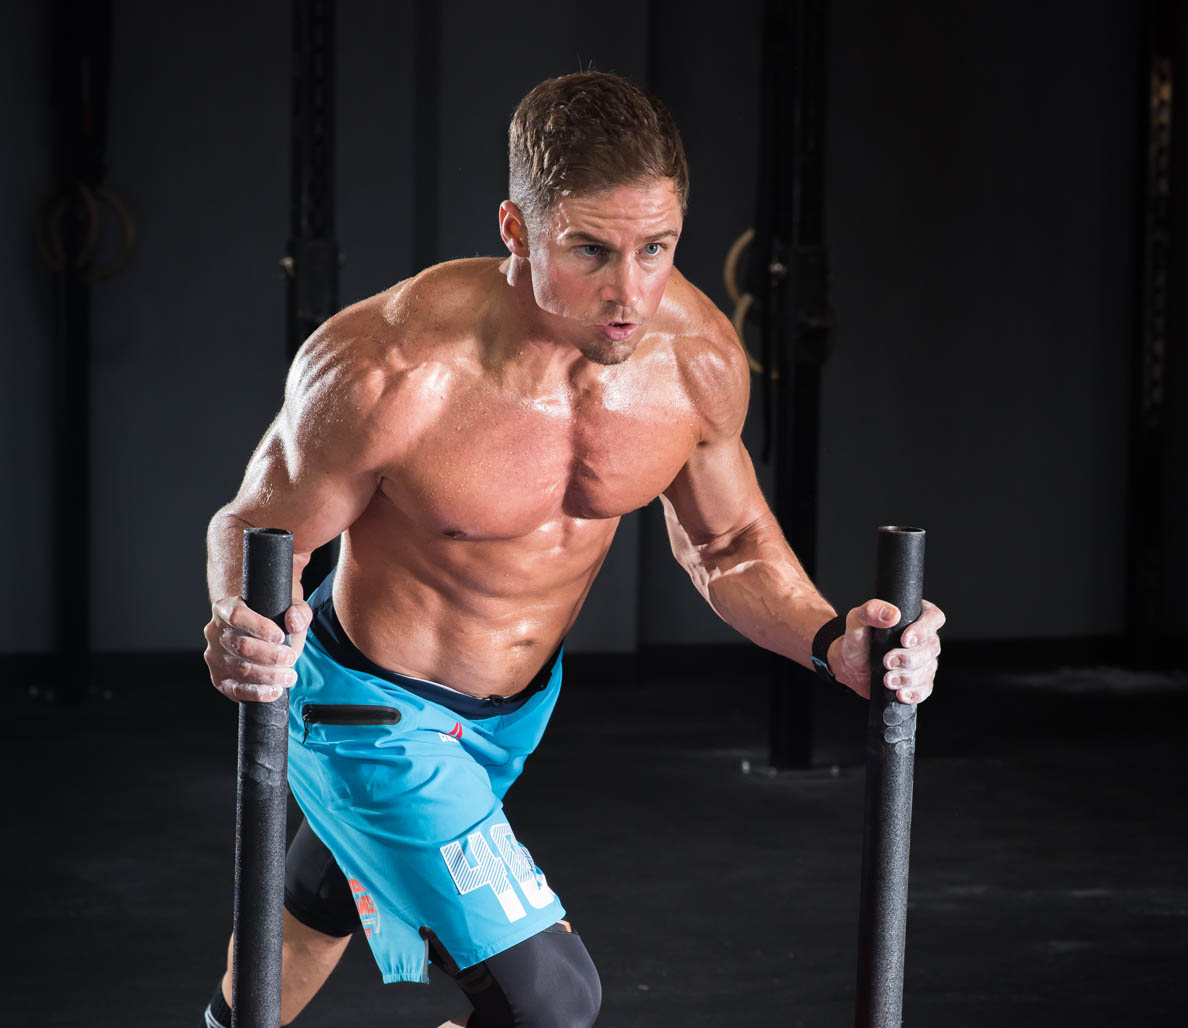 Dan Wells, CrossFit Games competitor and owner of CrossFit Horsepower in Los Angeles.